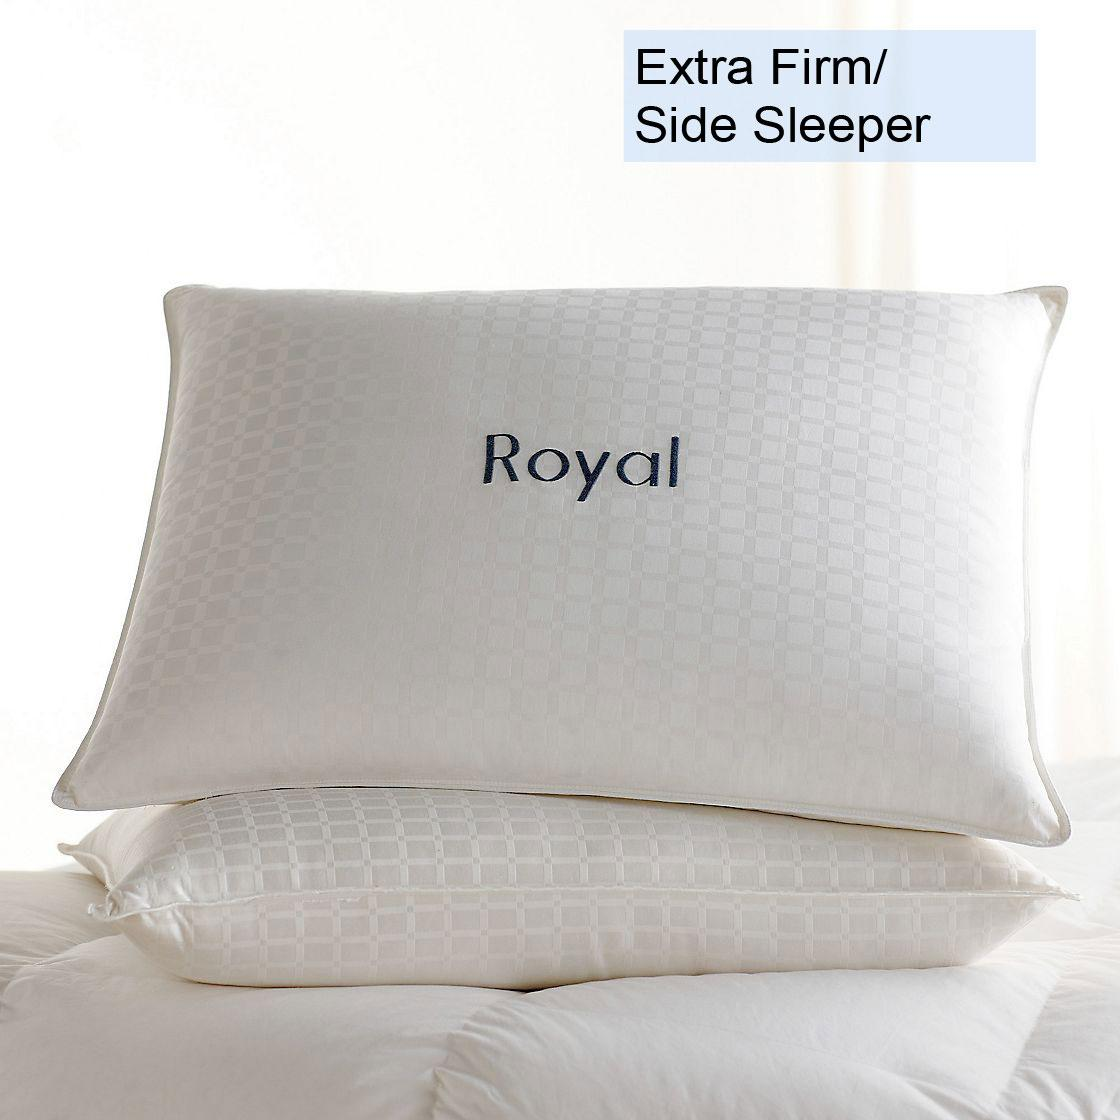 Best Firm Pillow For Side Sleepers Pillows The Company Store